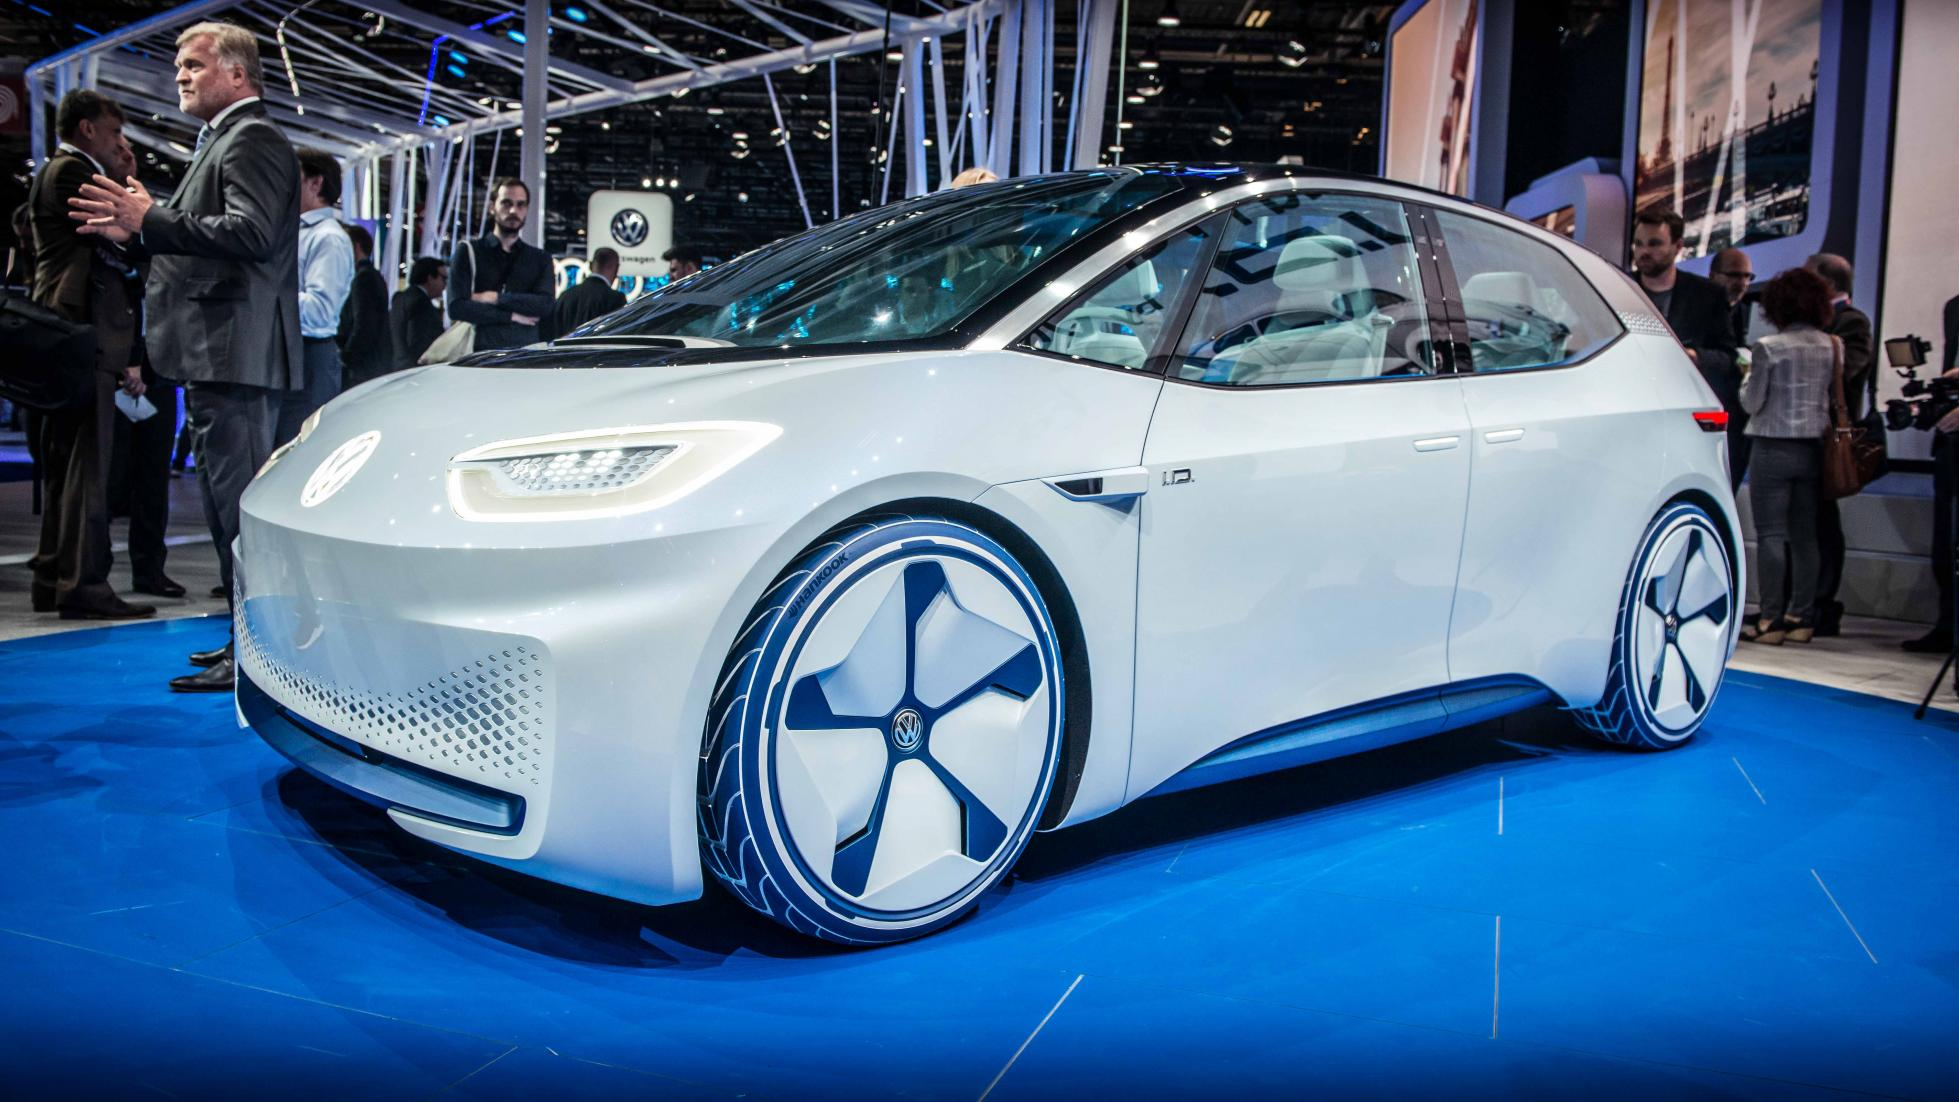 Israel will come to an unmanned taxi